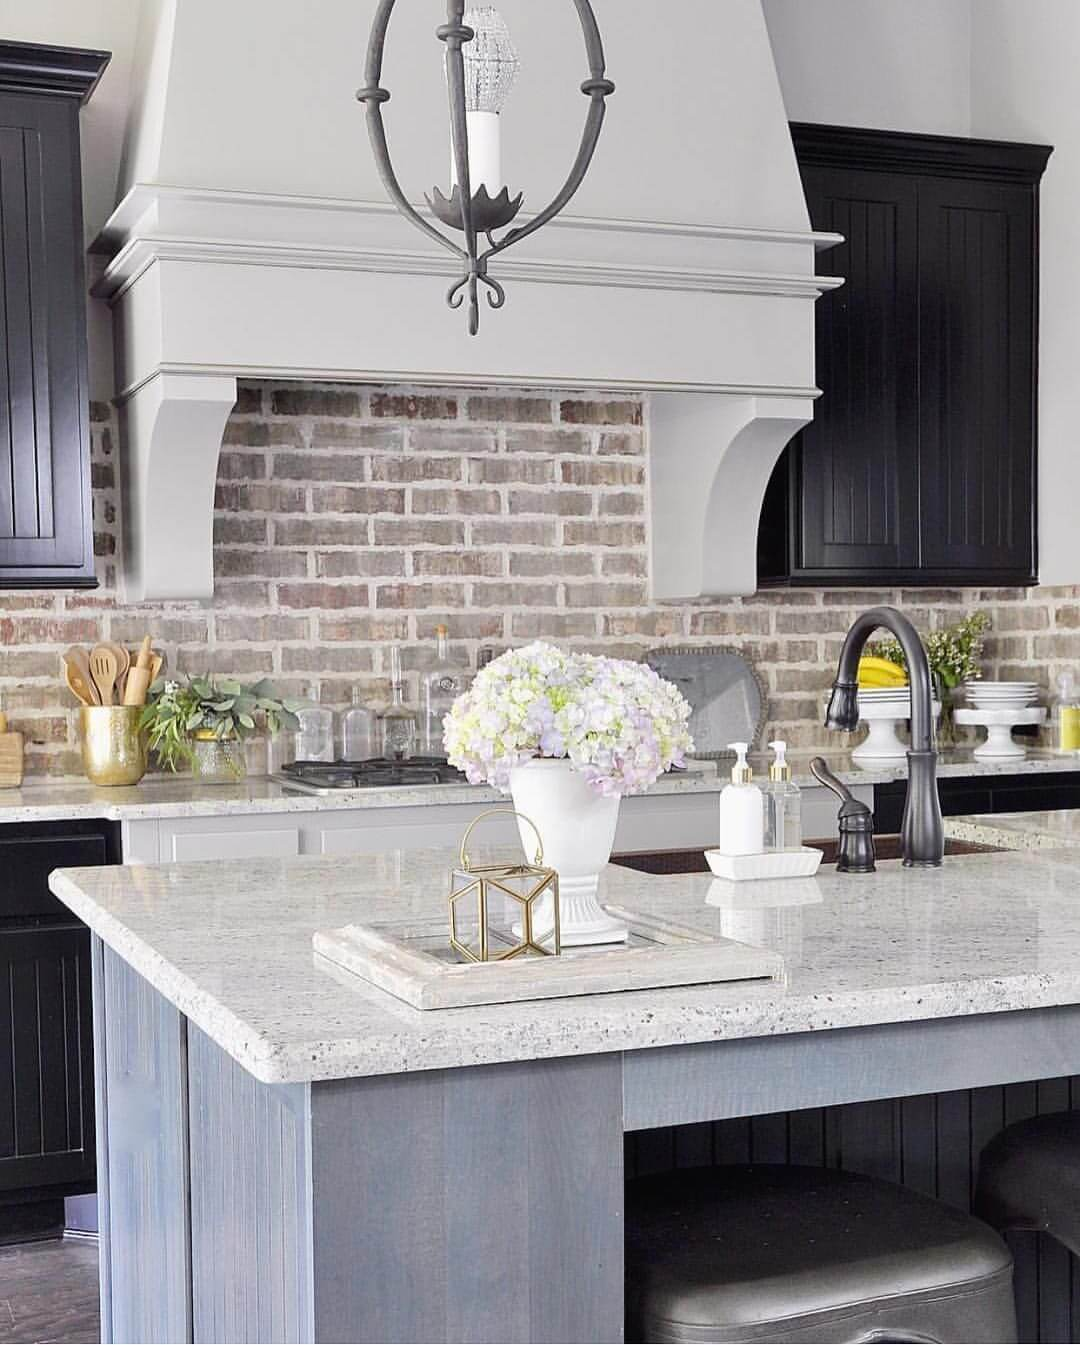 Kitchen island with complete sink